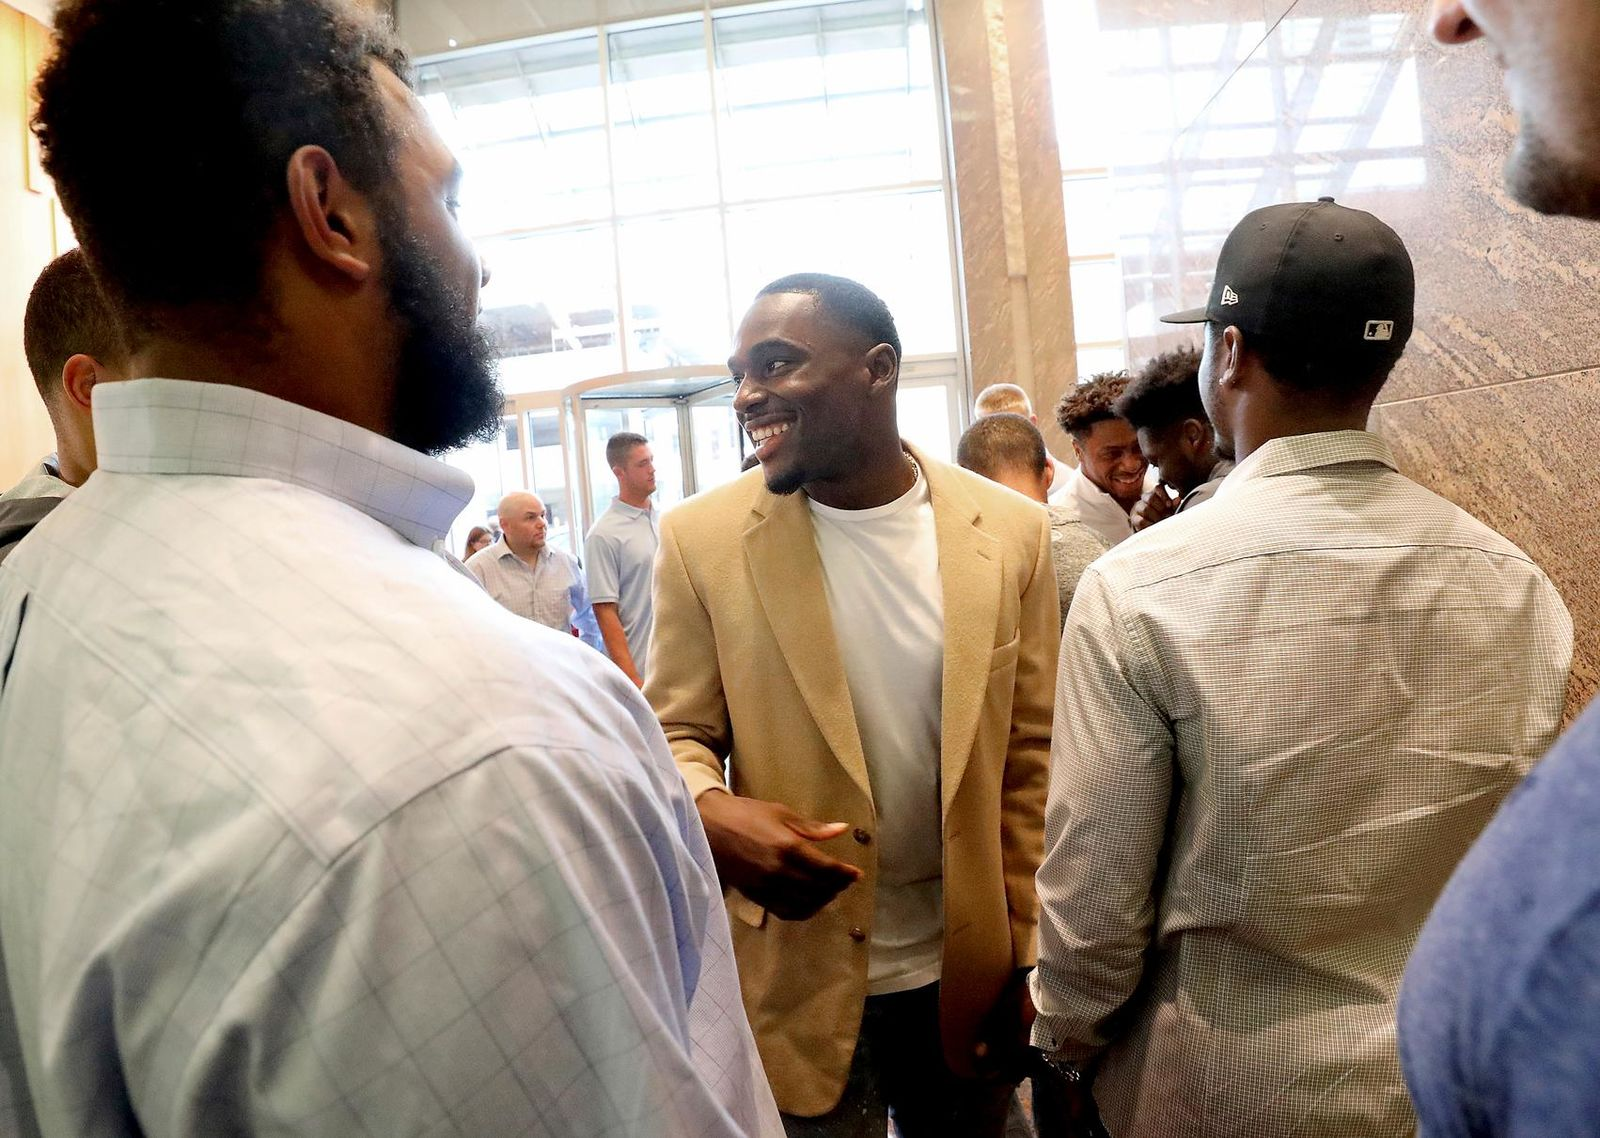 Former Wisconsin Badger football player Quintez Cephus, center, greets current members of the team following a press conference to reiterated his request for reinstatement to the university in Madison, Wis. Monday, Aug. 12, 2019.{ } (John Hart/Wisconsin State Journal via AP)